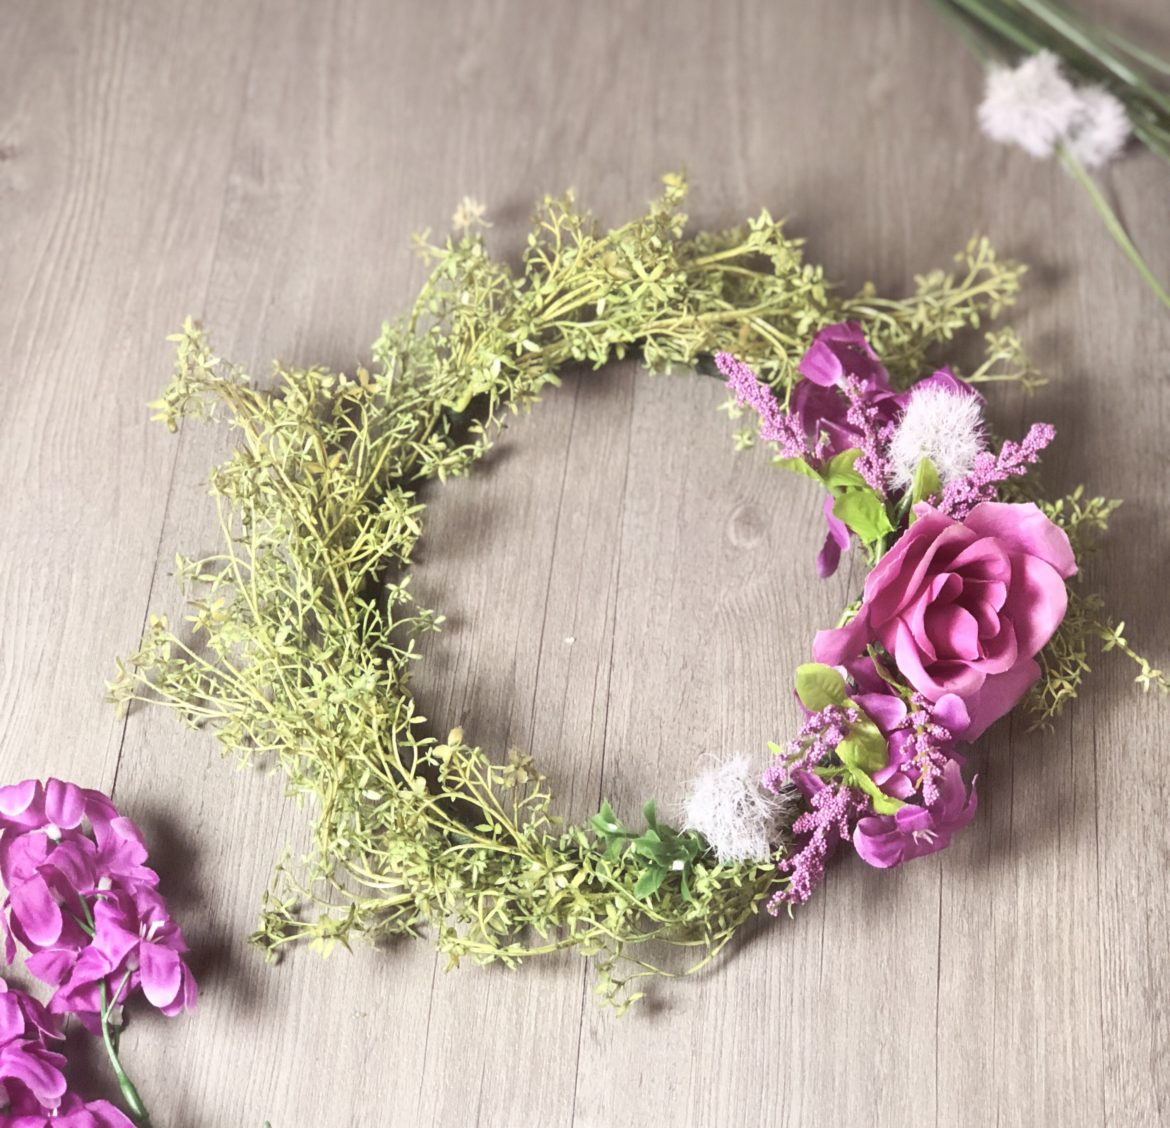 Diy floral crown diy bucket list diy floral crowns are so easy to make and they are a beautiful way to add next level pretty when you want to dress up this diy is super easy and you izmirmasajfo